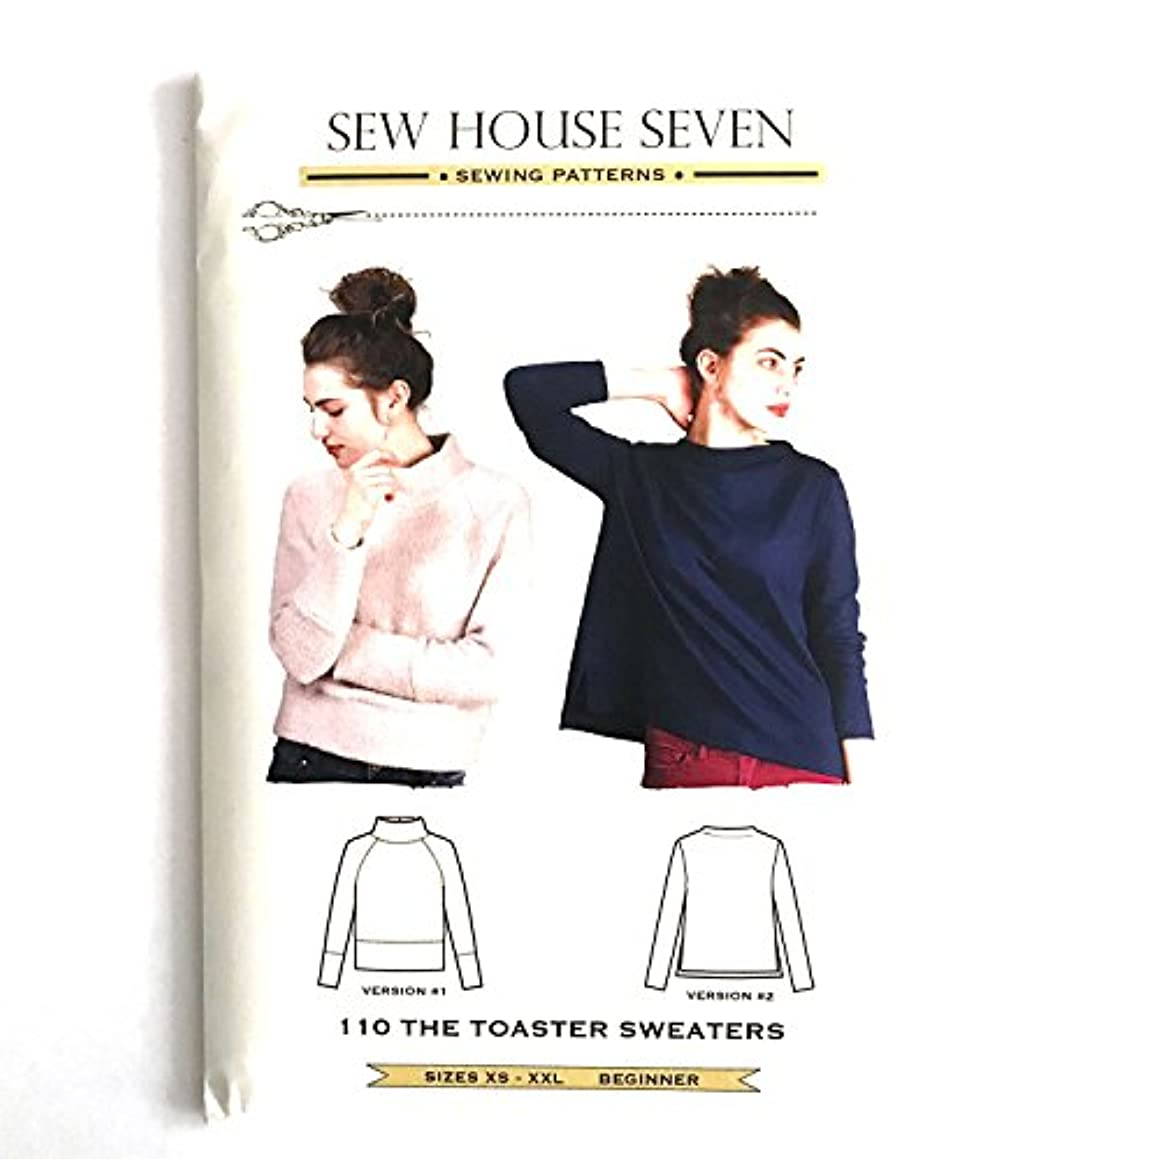 Sew House Seven 110 Toaster Sweaters #1 & #2 Ptrn, None